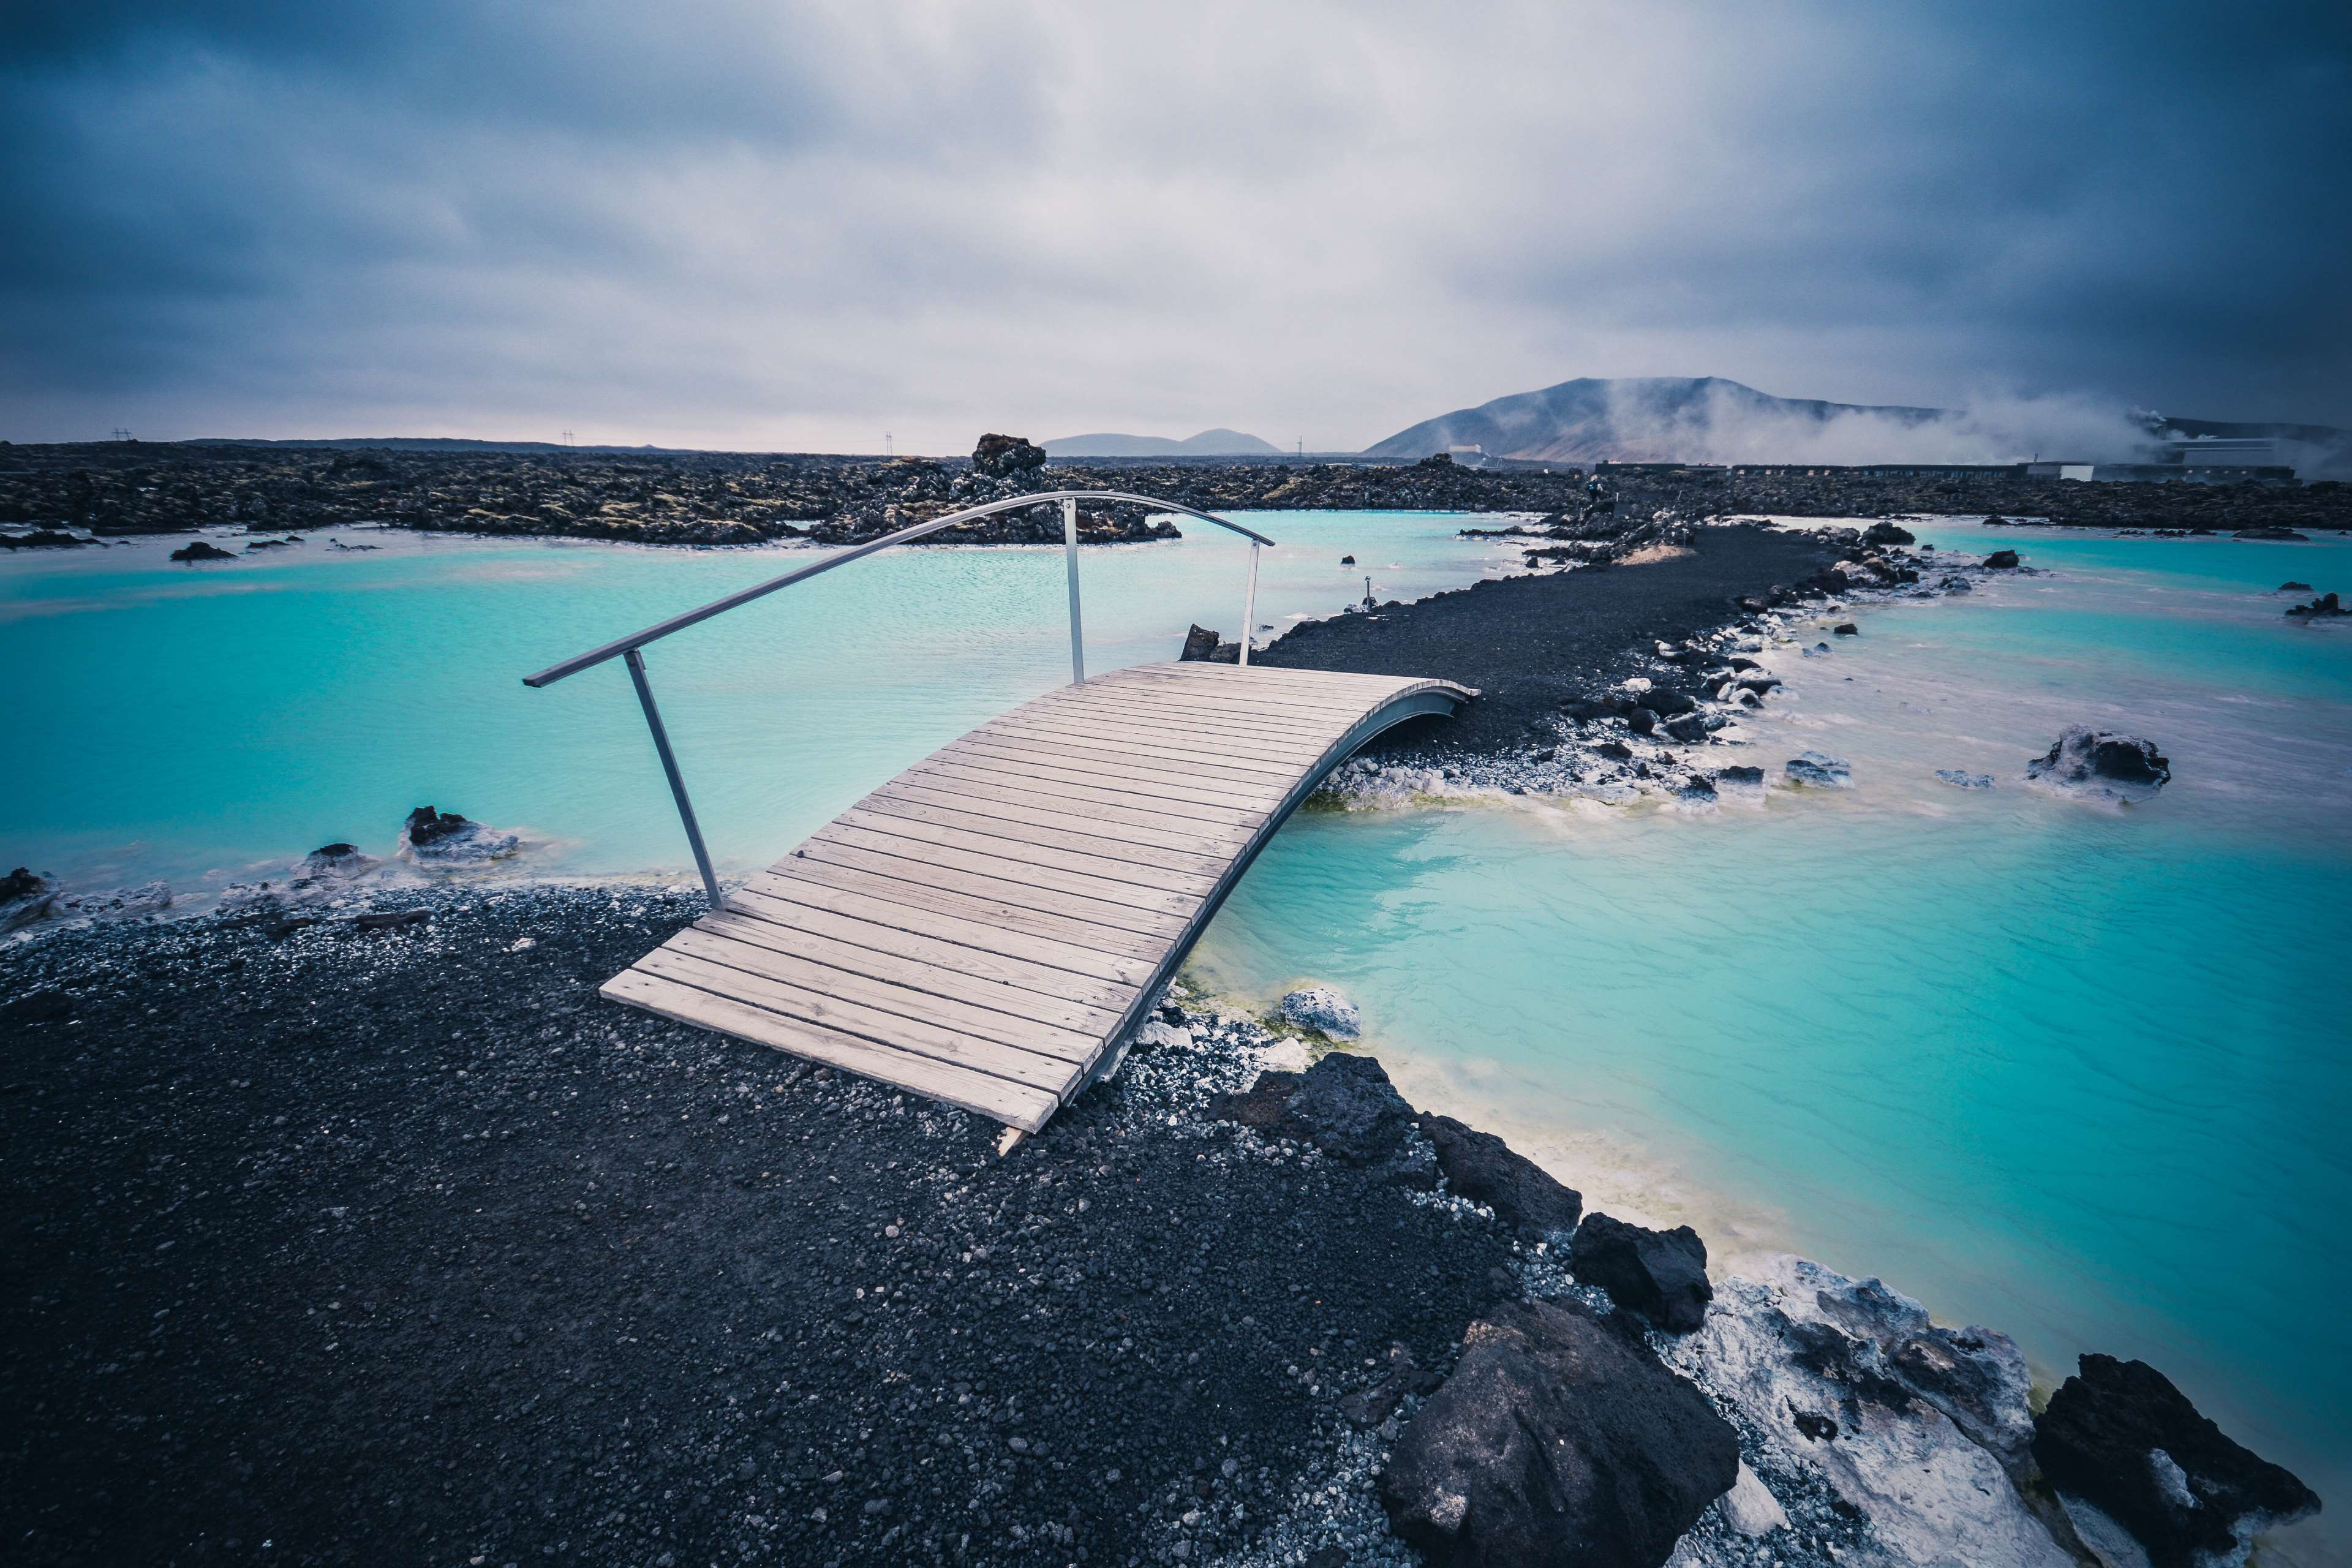 blue, blue lagoon, bridge, clouds, cold, iceland, mountains, night